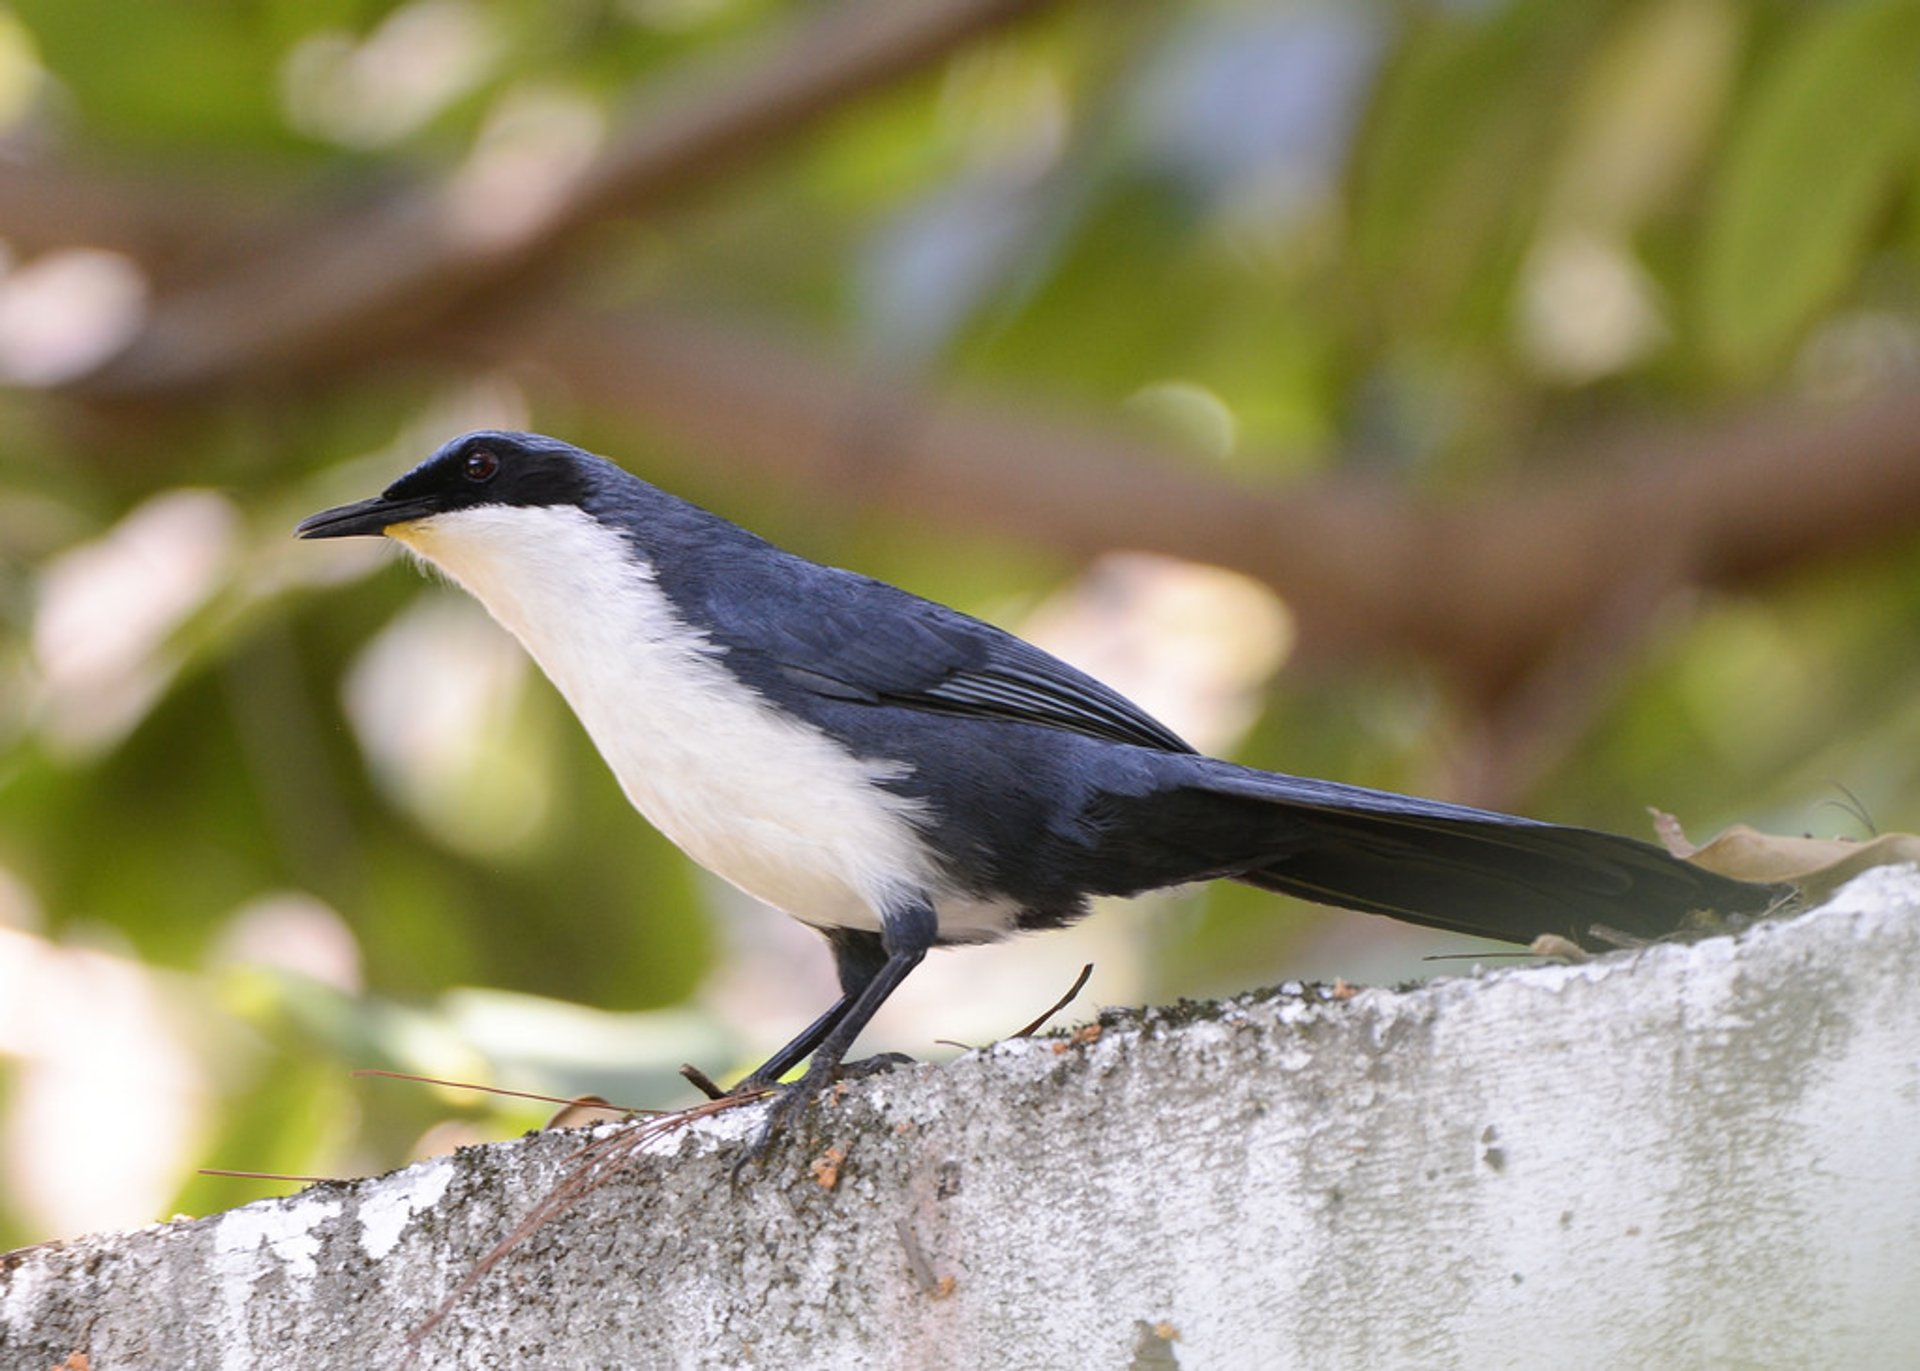 Blue-and-white Mockingbird (Melanotis hypoleucus) 2019